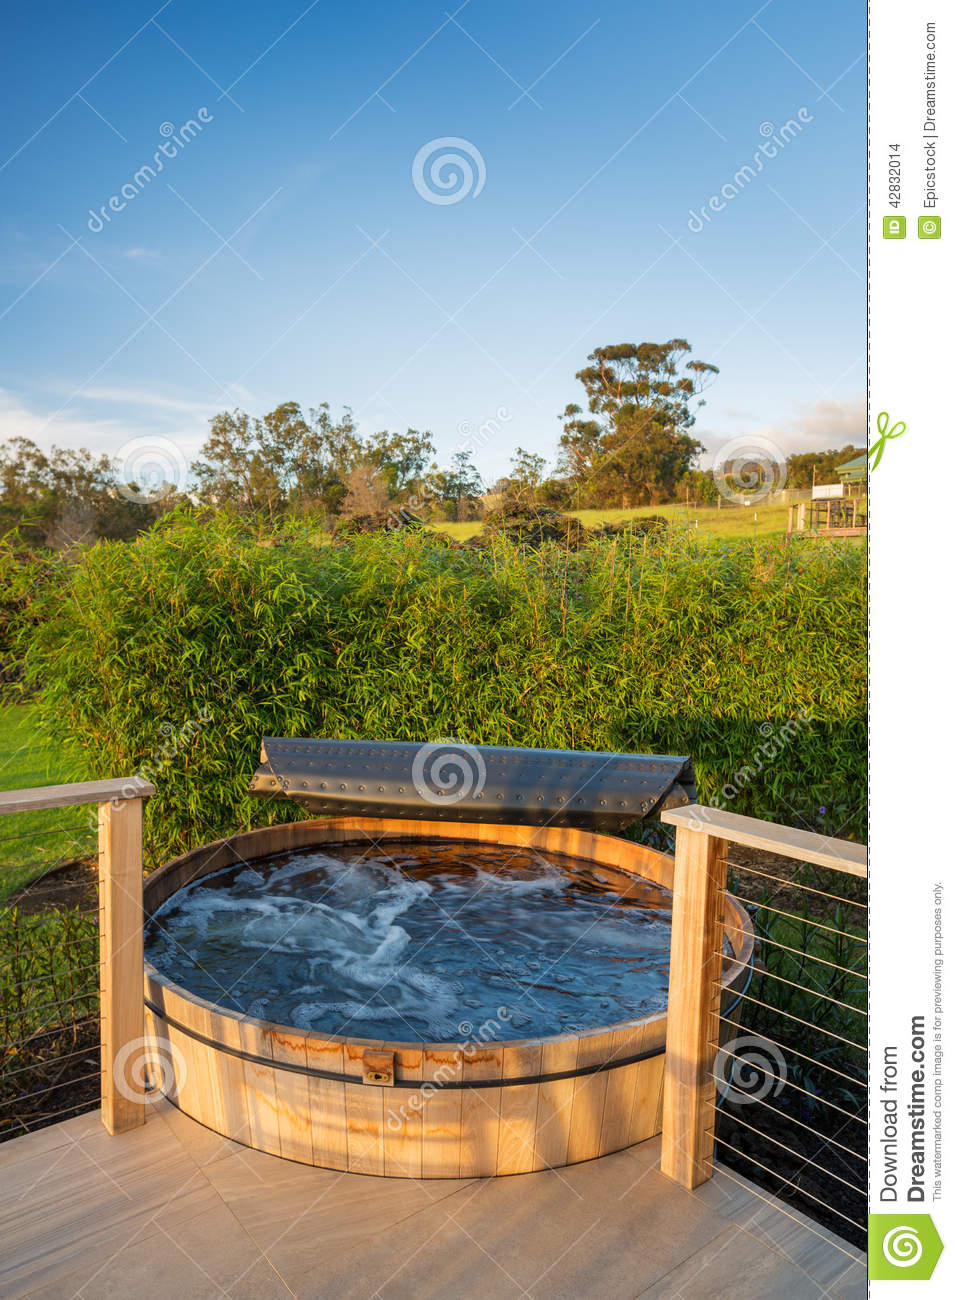 hot tub jacuzzi outside of a modern house stock photo image 42832014. Black Bedroom Furniture Sets. Home Design Ideas